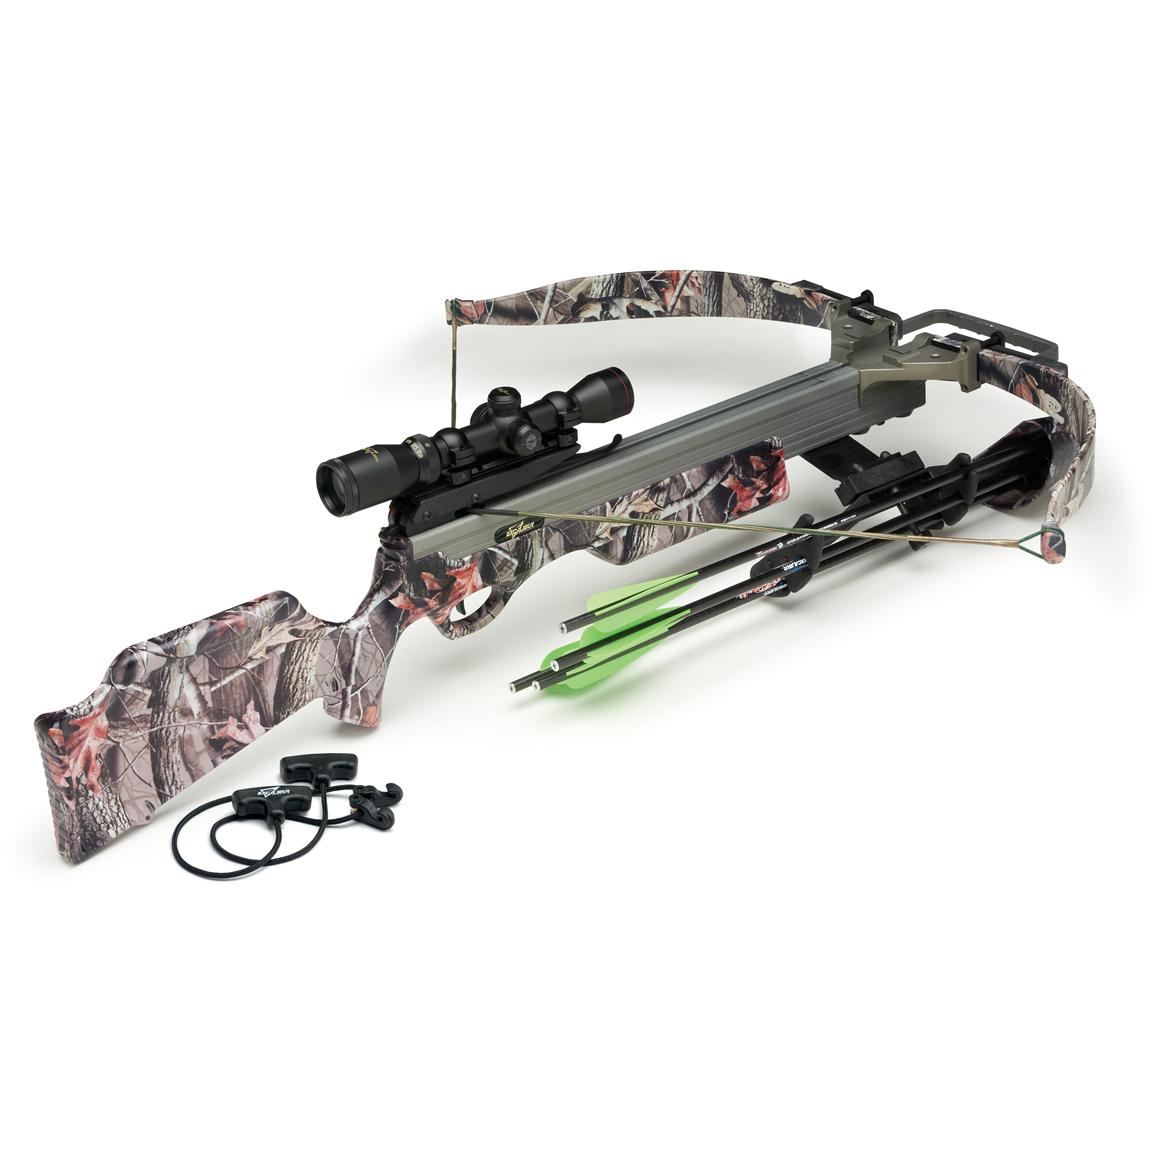 Excalibur® Phoenix Crossbow with Lite Stuff Package